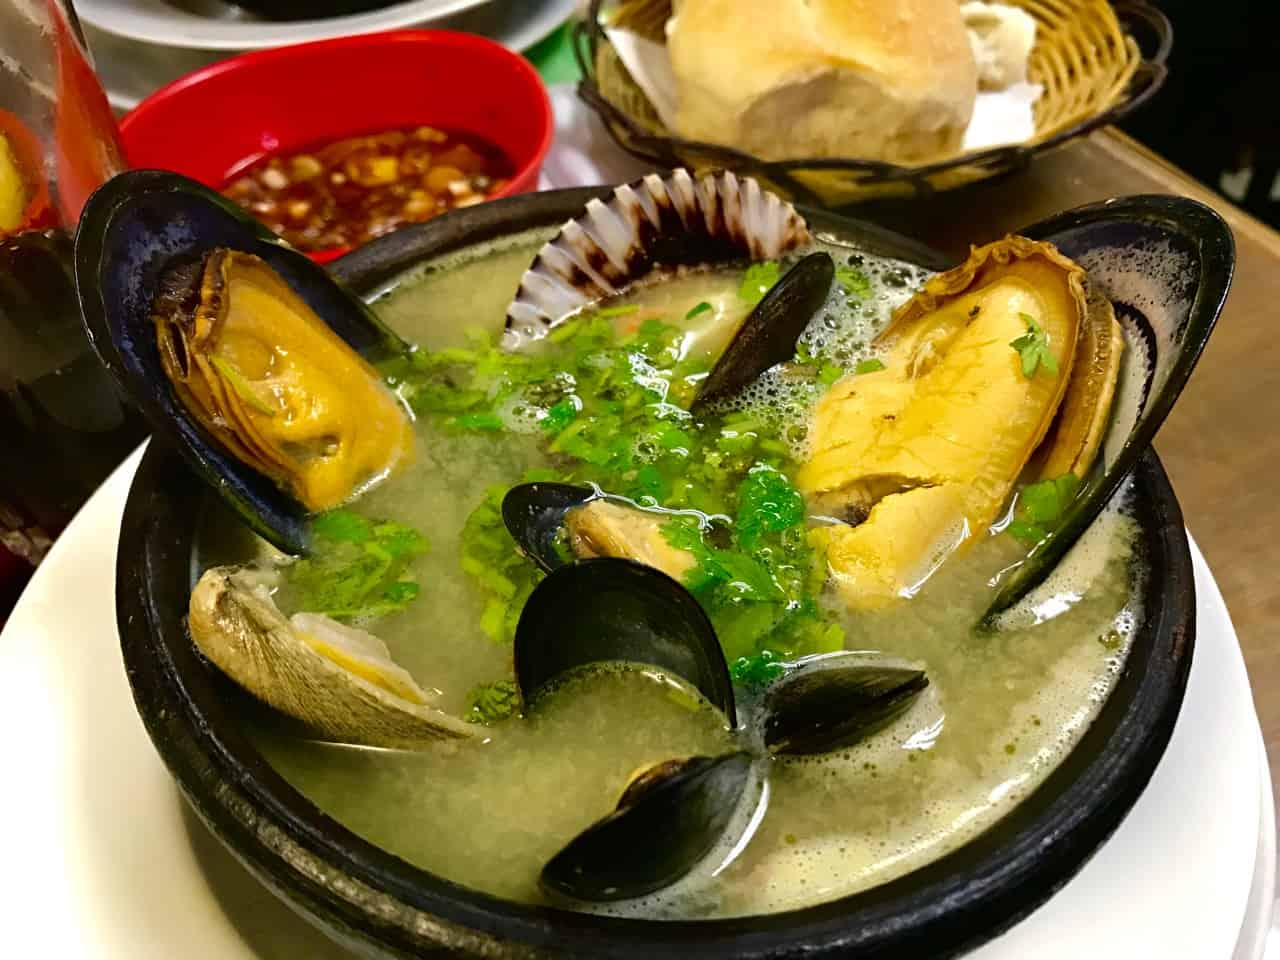 Things to do in Santiago - A bowl of Paila Marina at Yiyi Restaurant in the Mercado Central in Santiago